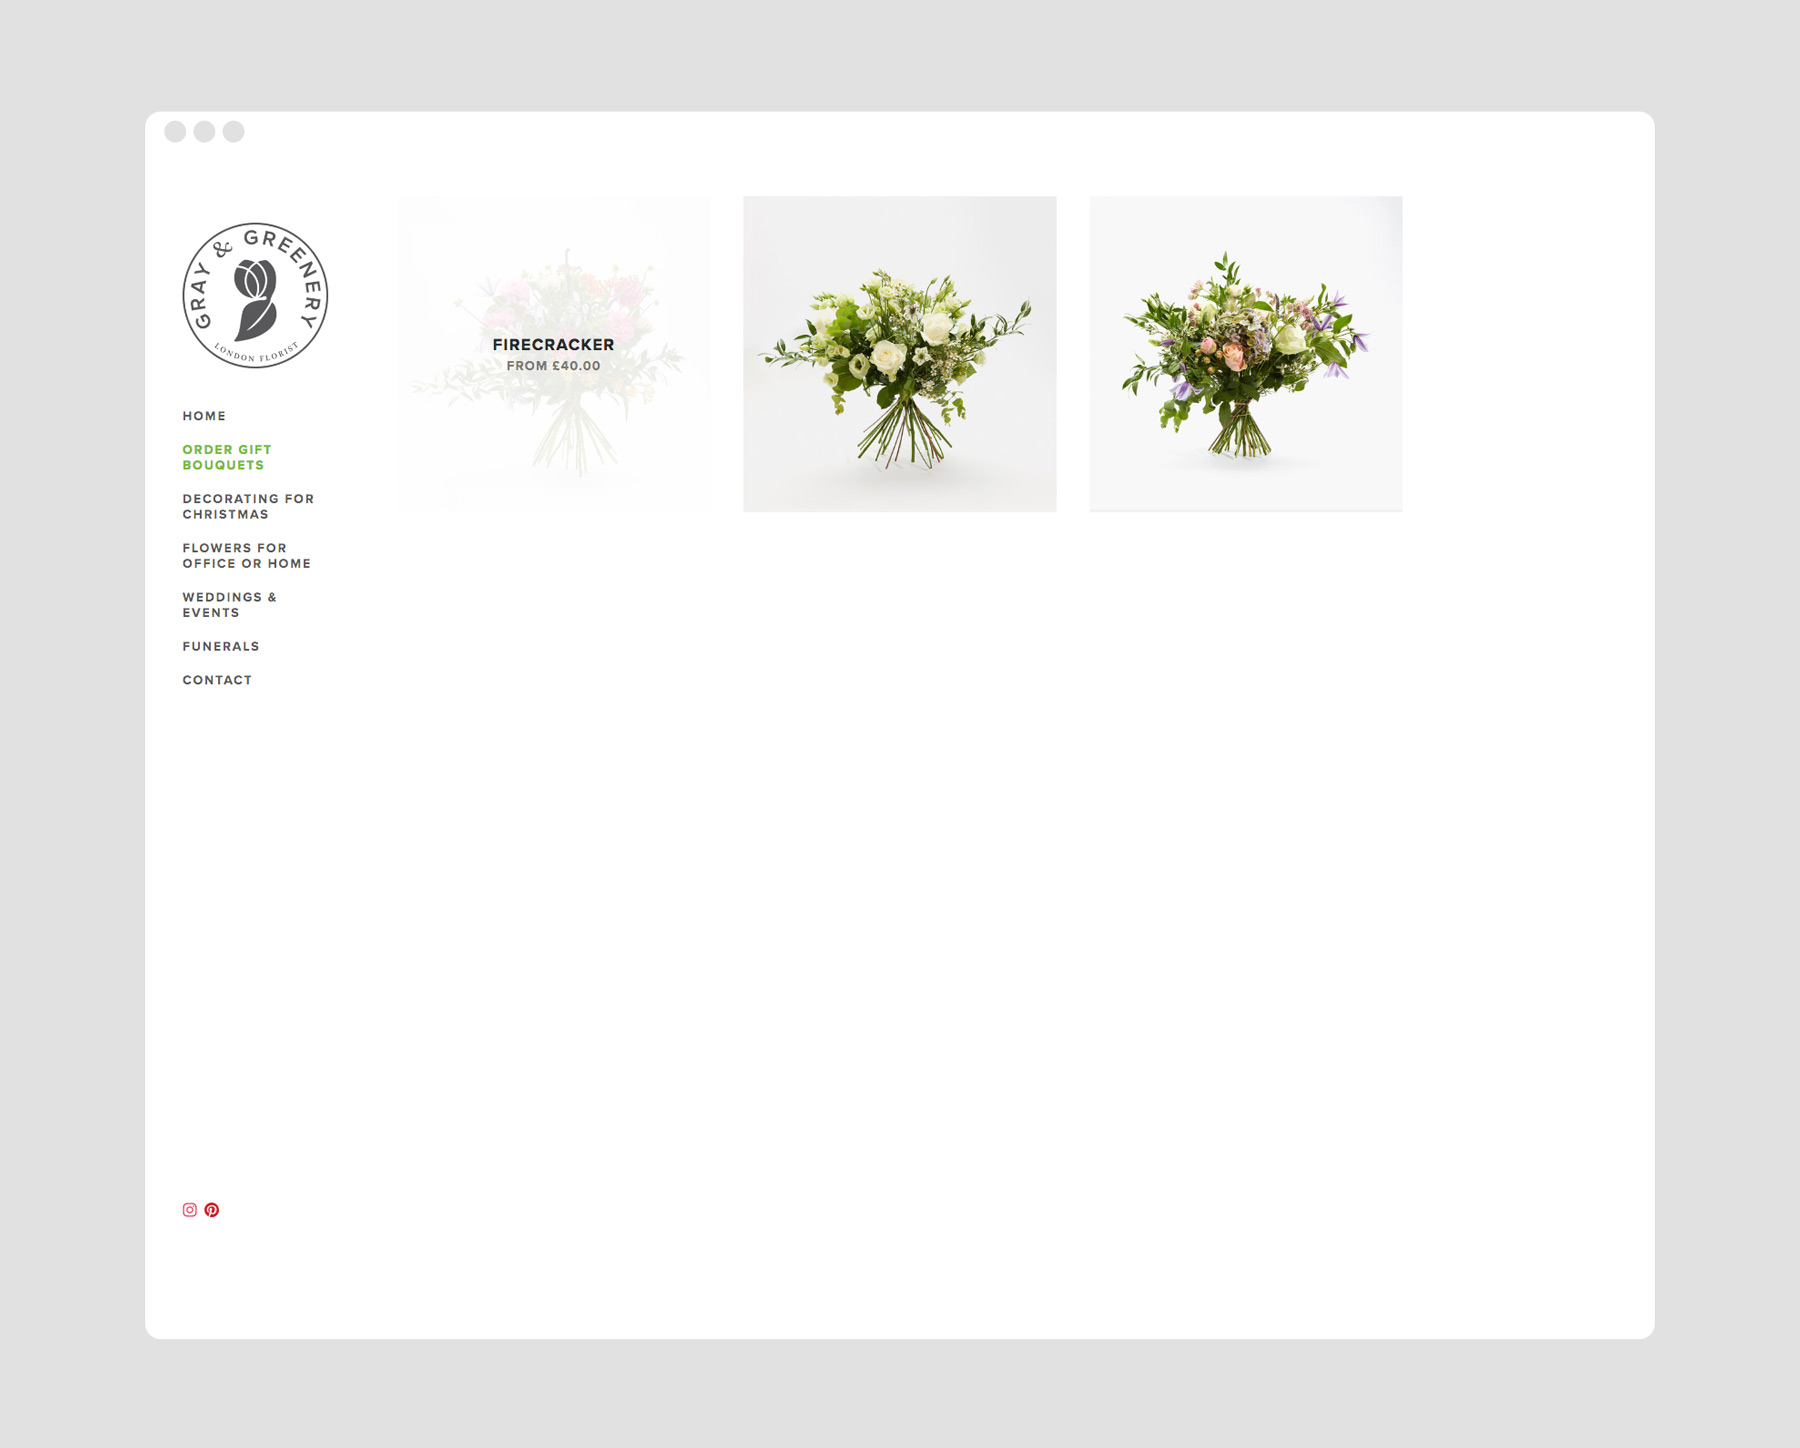 grayandgreenery-brand-and-design-by-ALSOAgency-SHOP-2.jpg